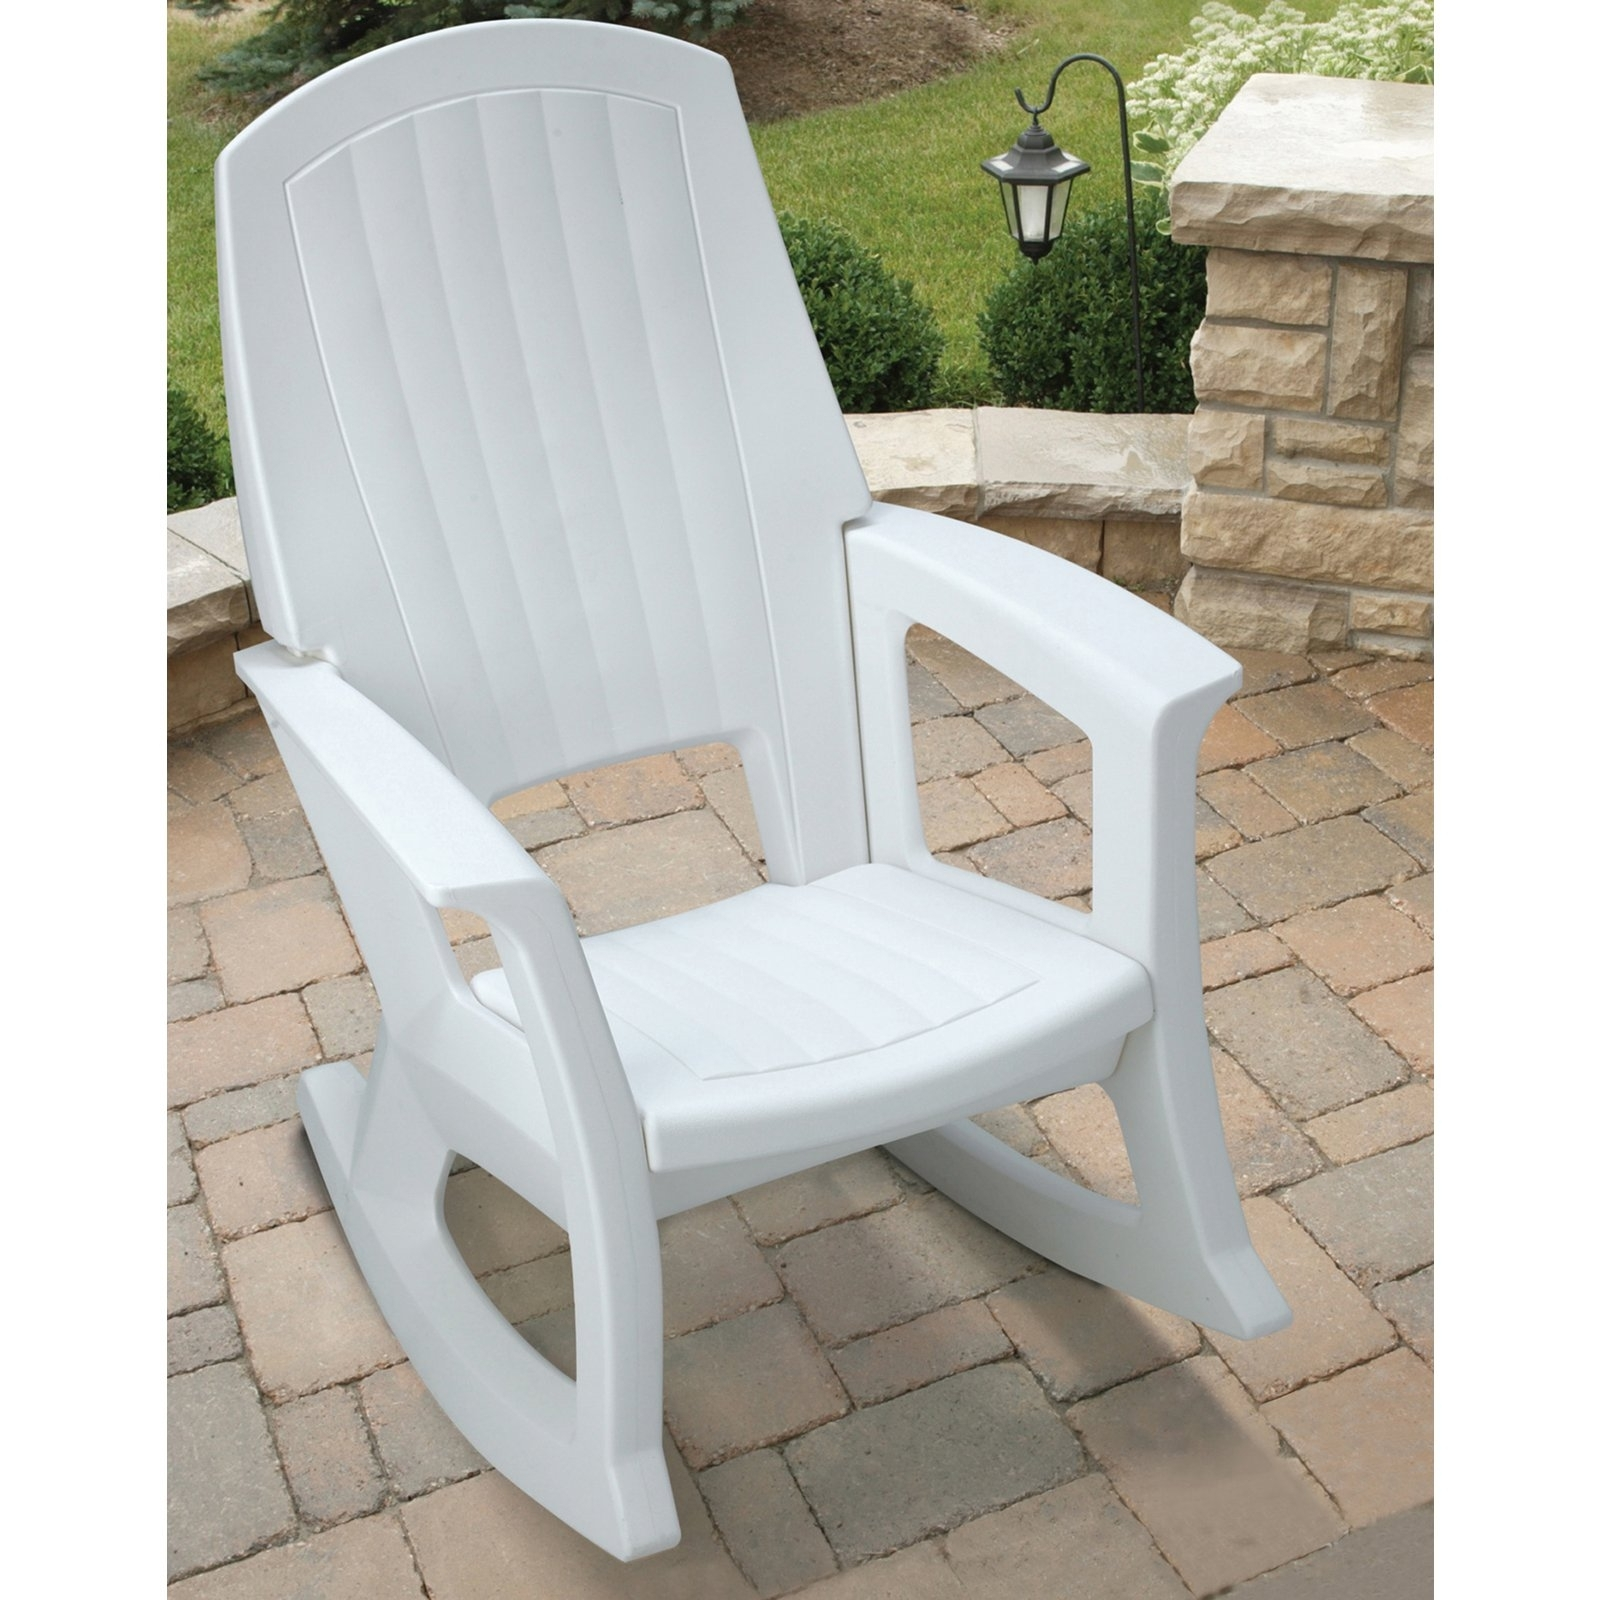 Semco Recycled Plastic Rocking Chair – Walmart Pertaining To Recent Rocking Chairs For Outdoors (View 15 of 15)